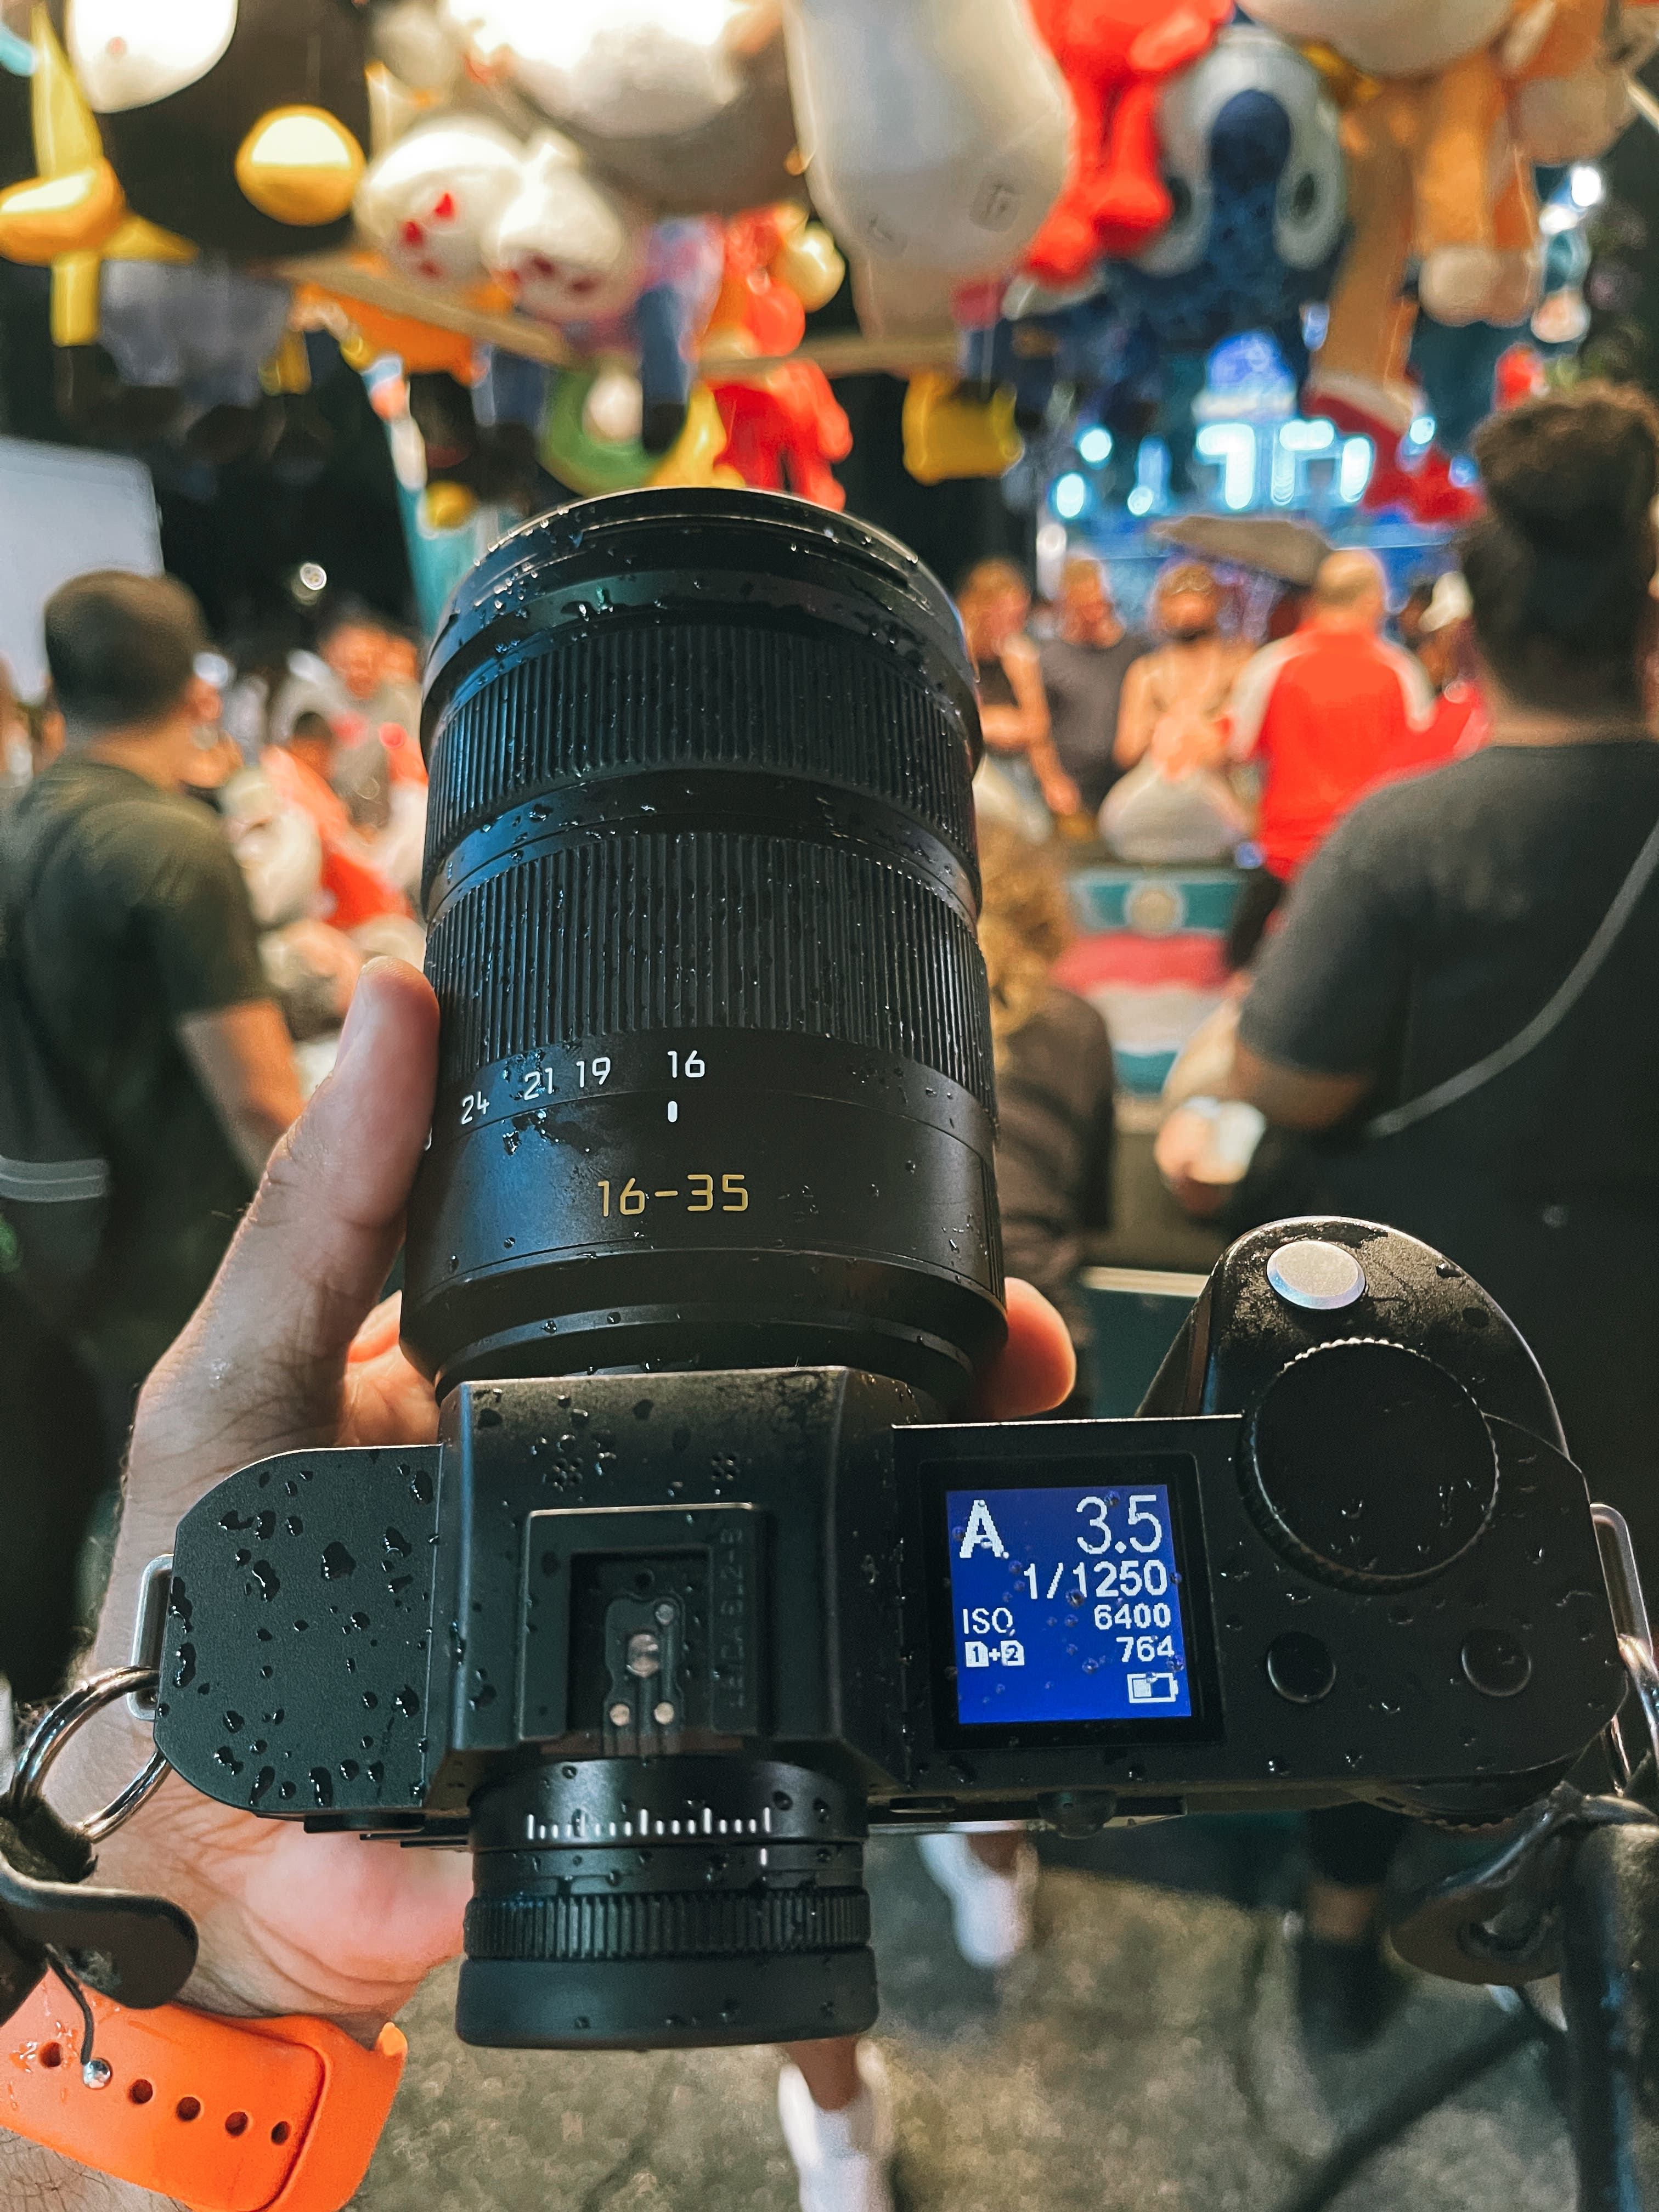 So Much Amazing Character. Leica 16-35mm F3.5-4.5 SL Review